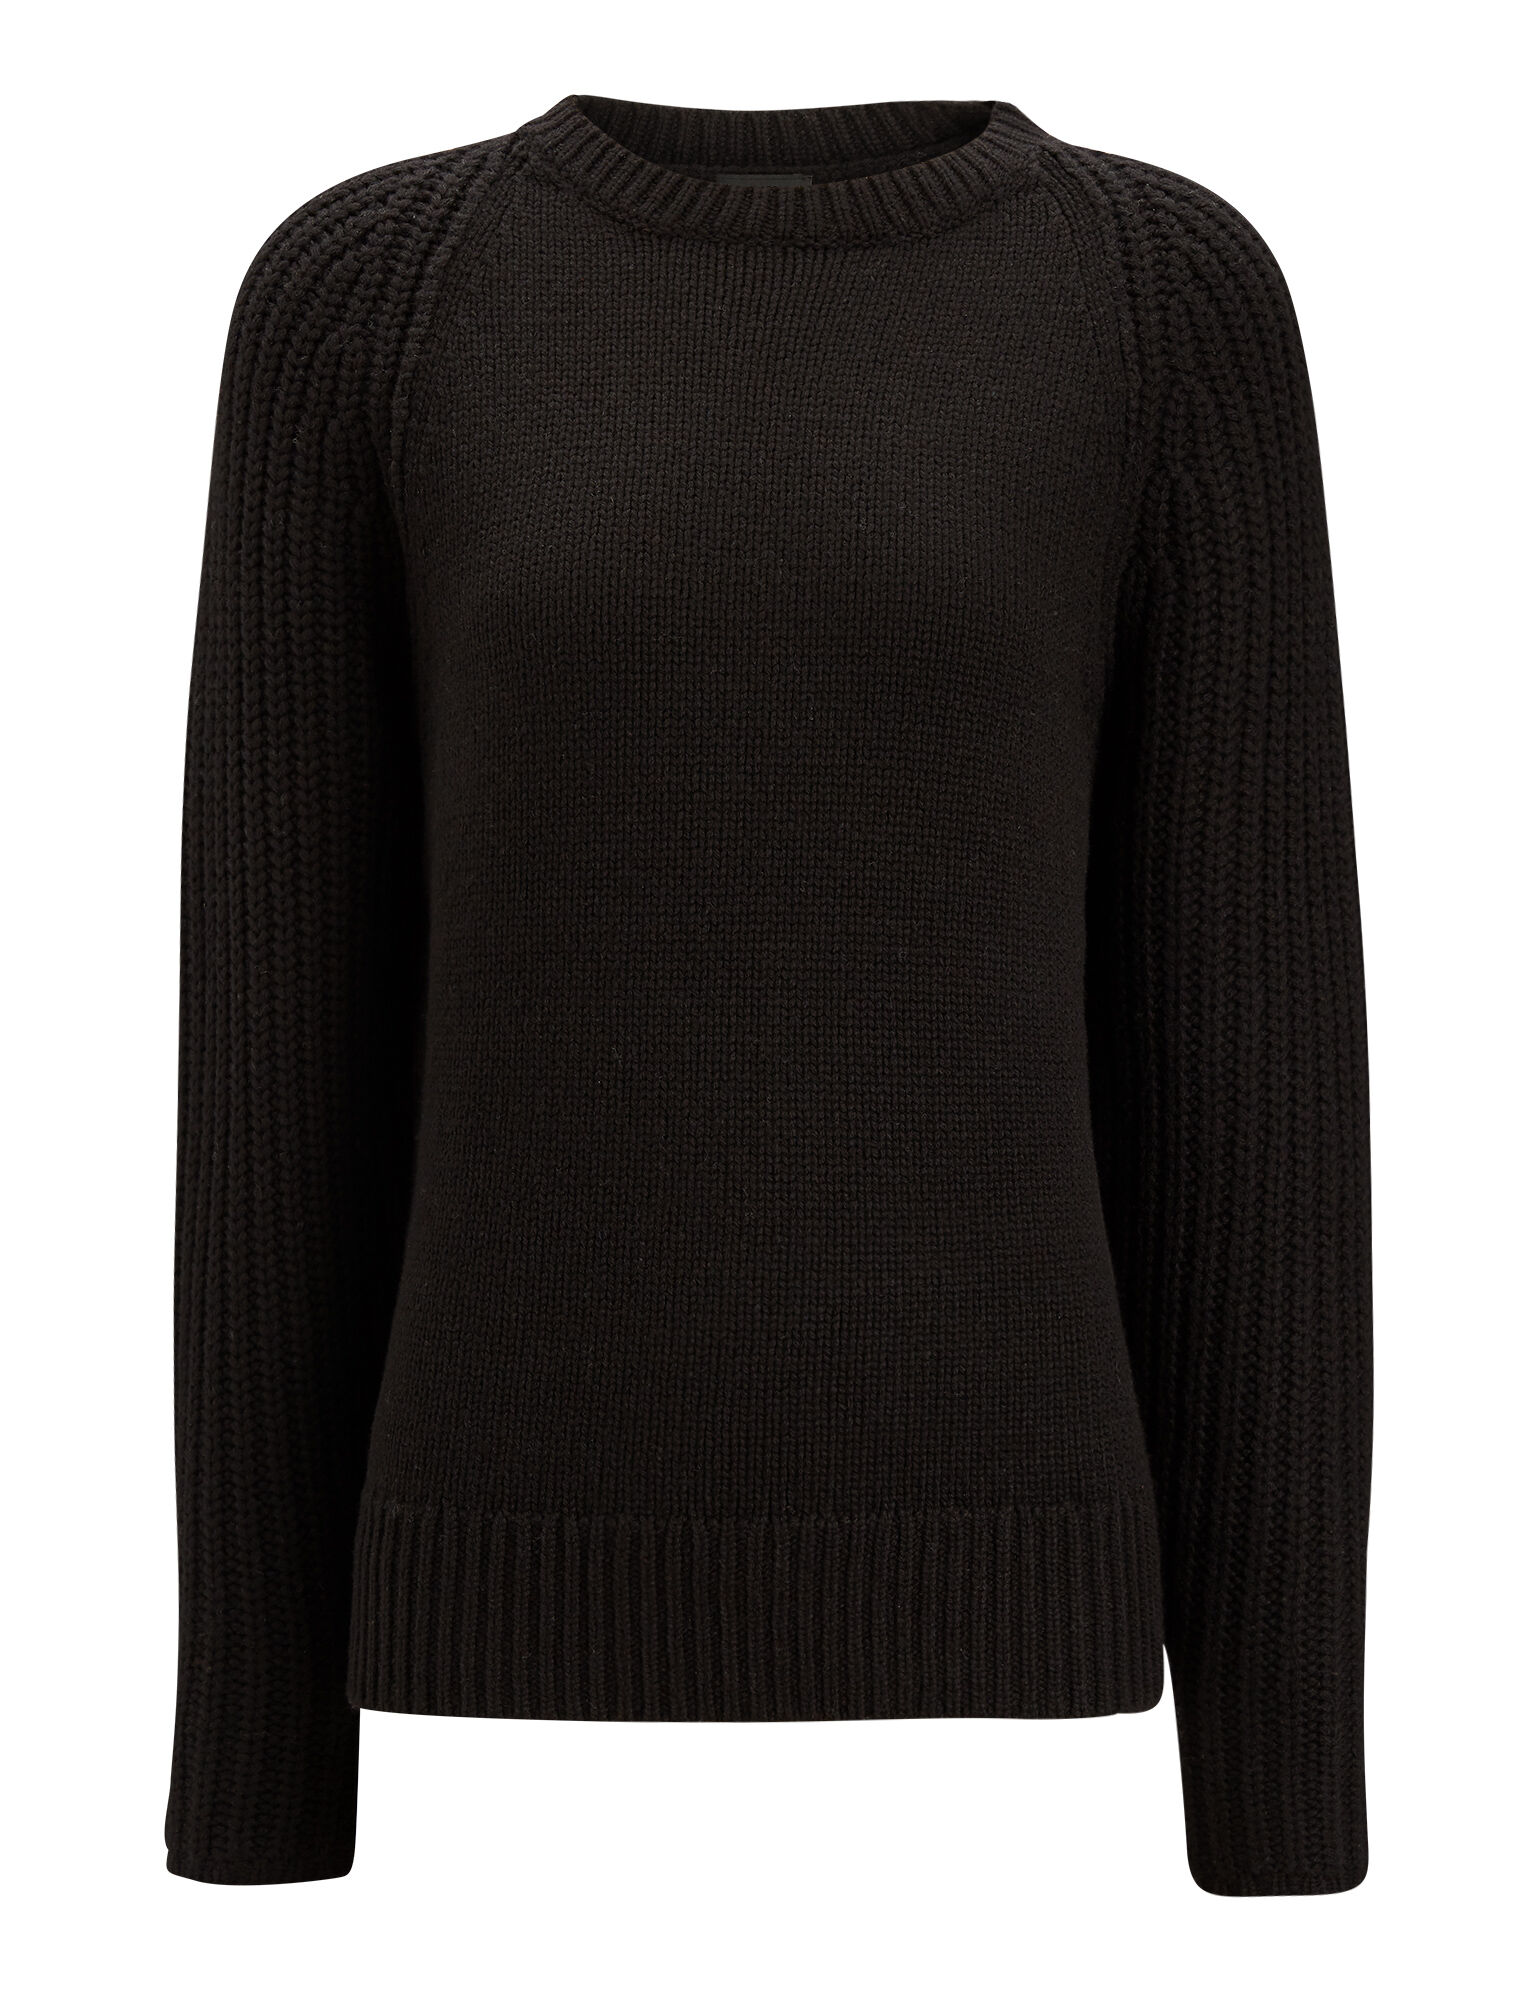 Joseph, Soft Wool Purl Stitch Knit, in BLACK